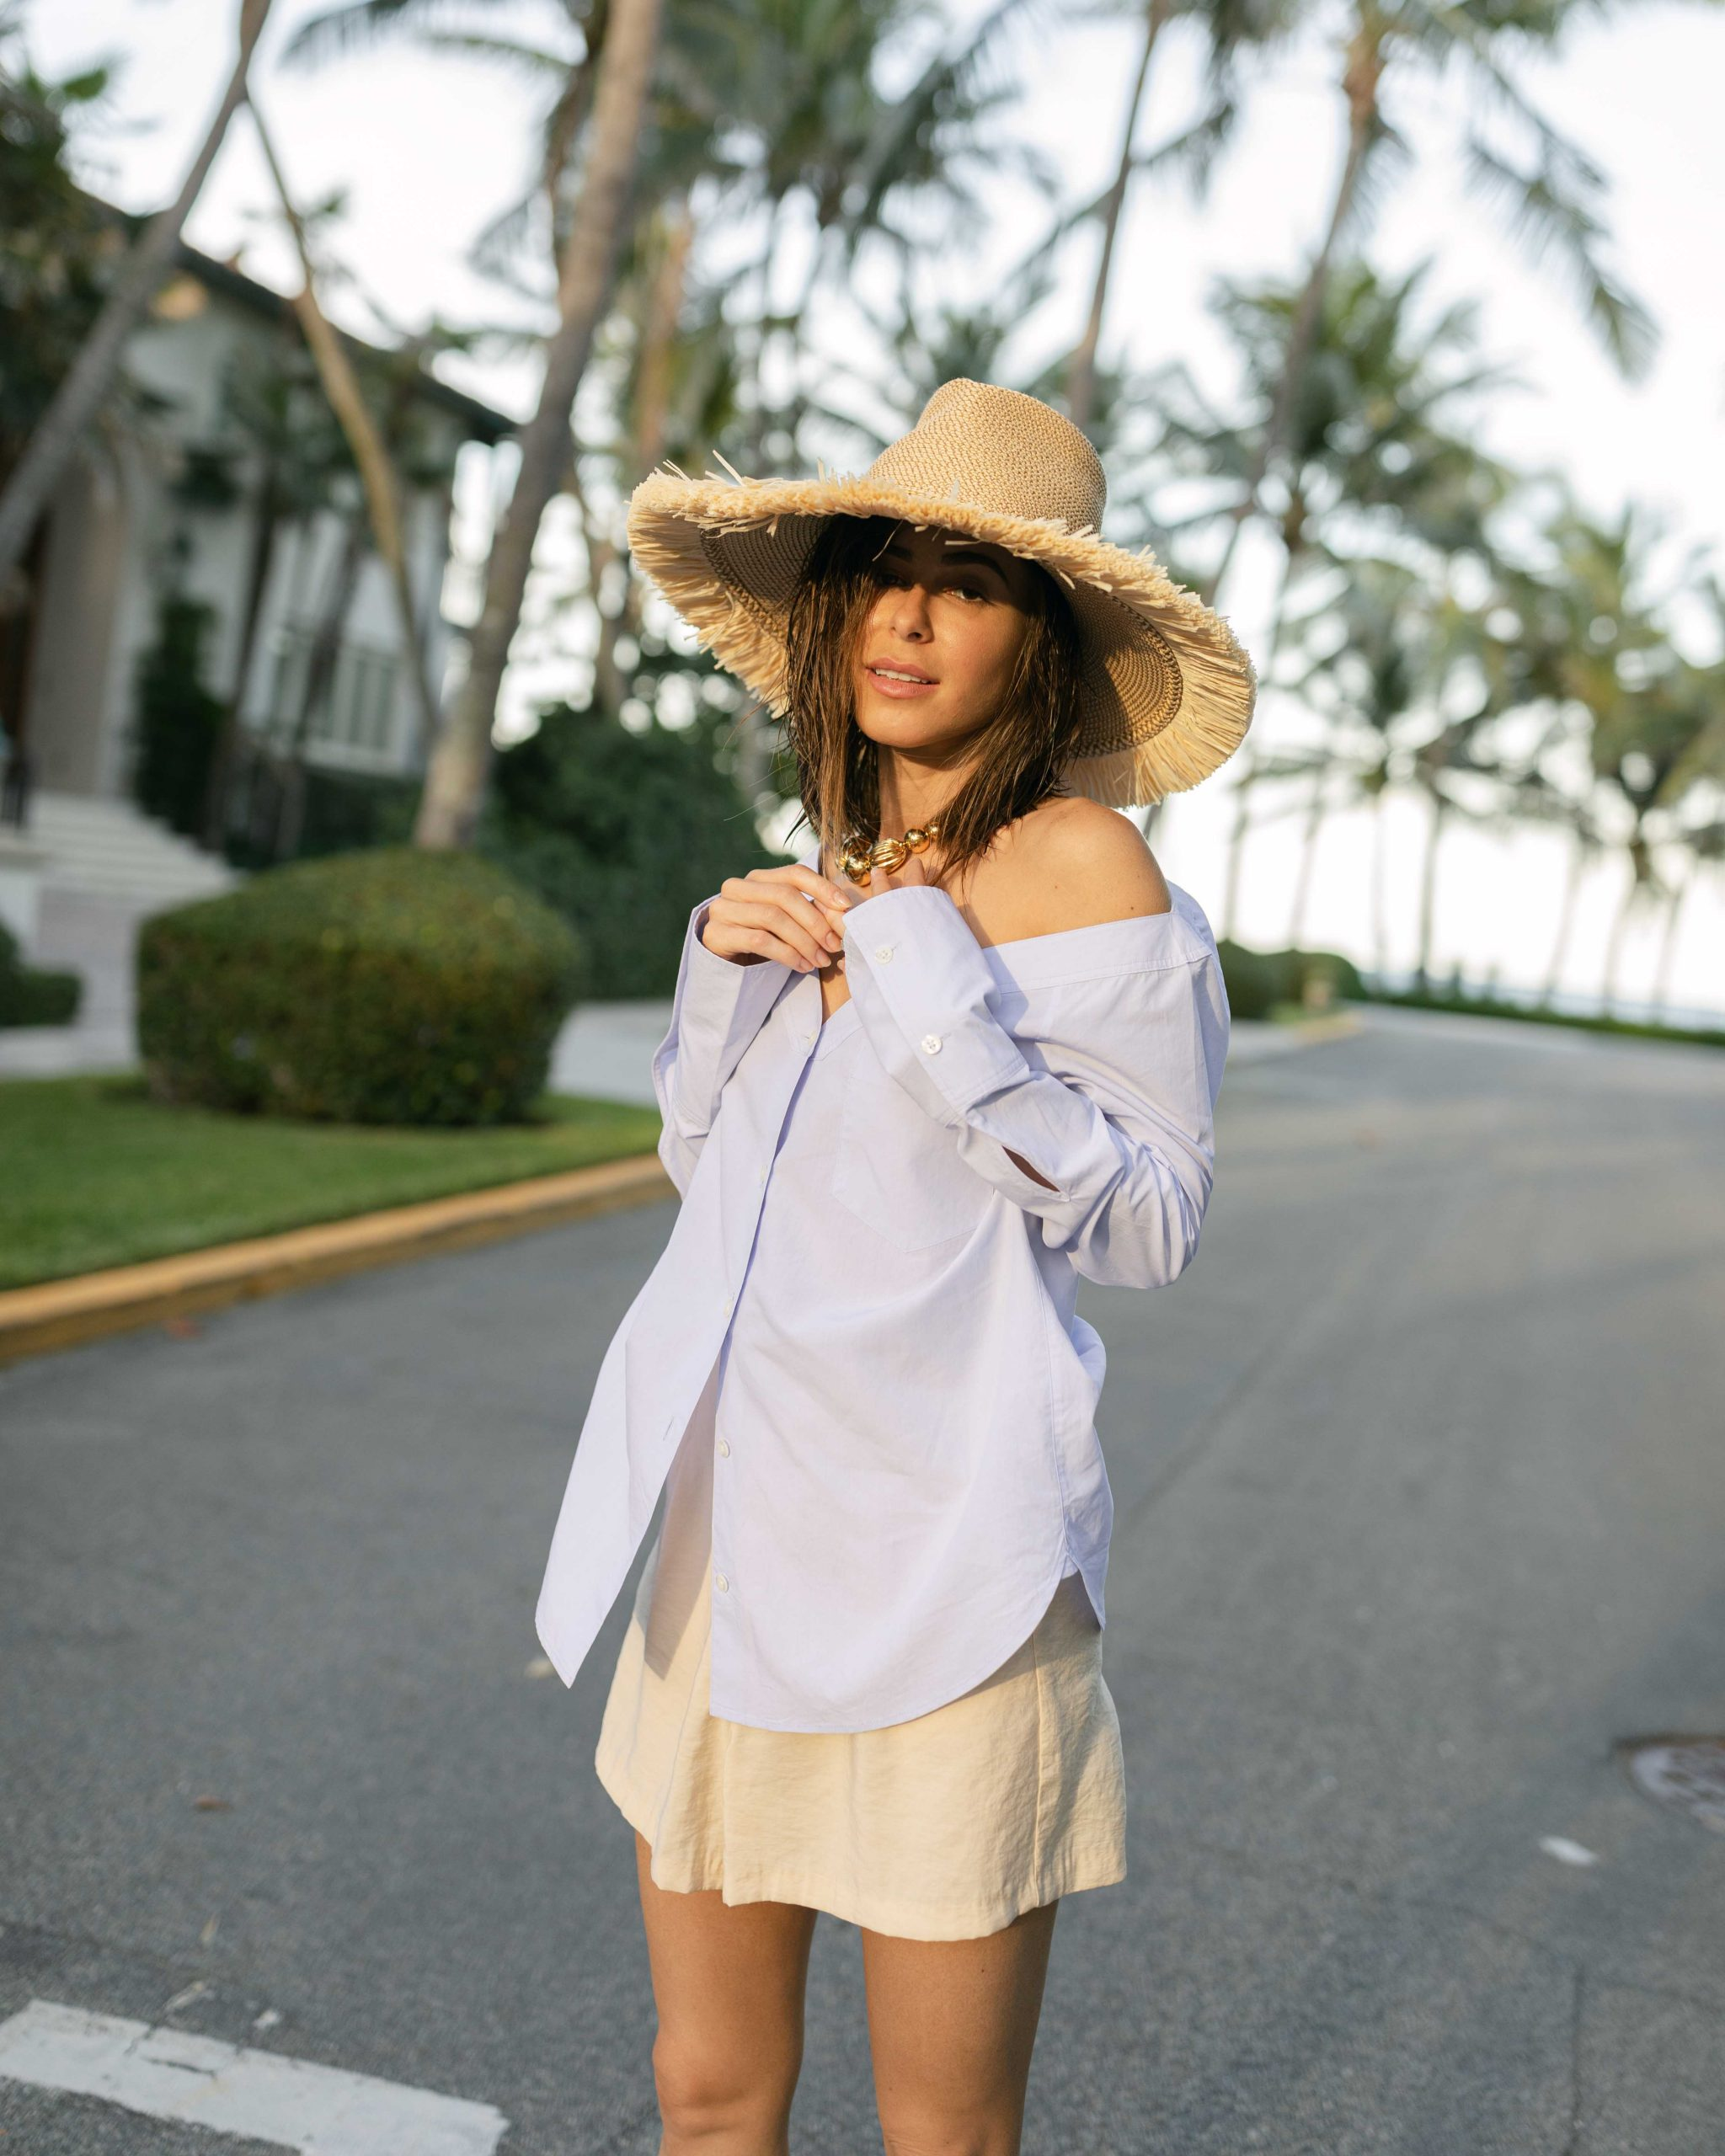 Style Blogger Stephanie Hill wears #ootd featuring an Eric Javits sun hat on The Style Bungalow